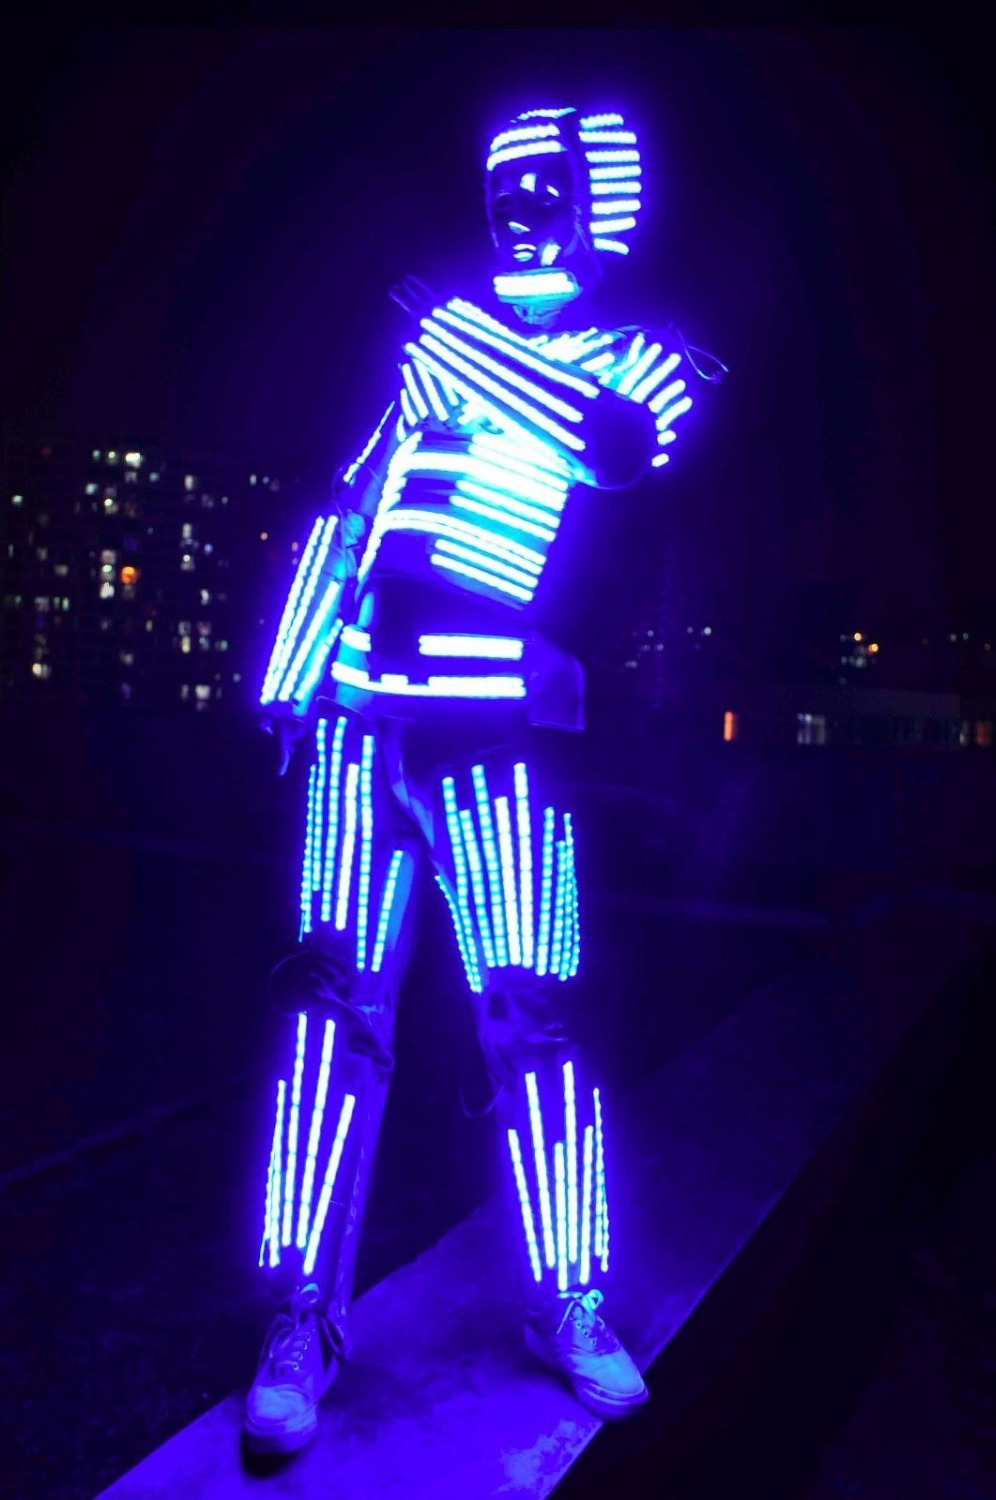 LED-luminous-glowing-dance-costumes-suits-for-men-led-robot-zancos-light-up-led-for-clothing